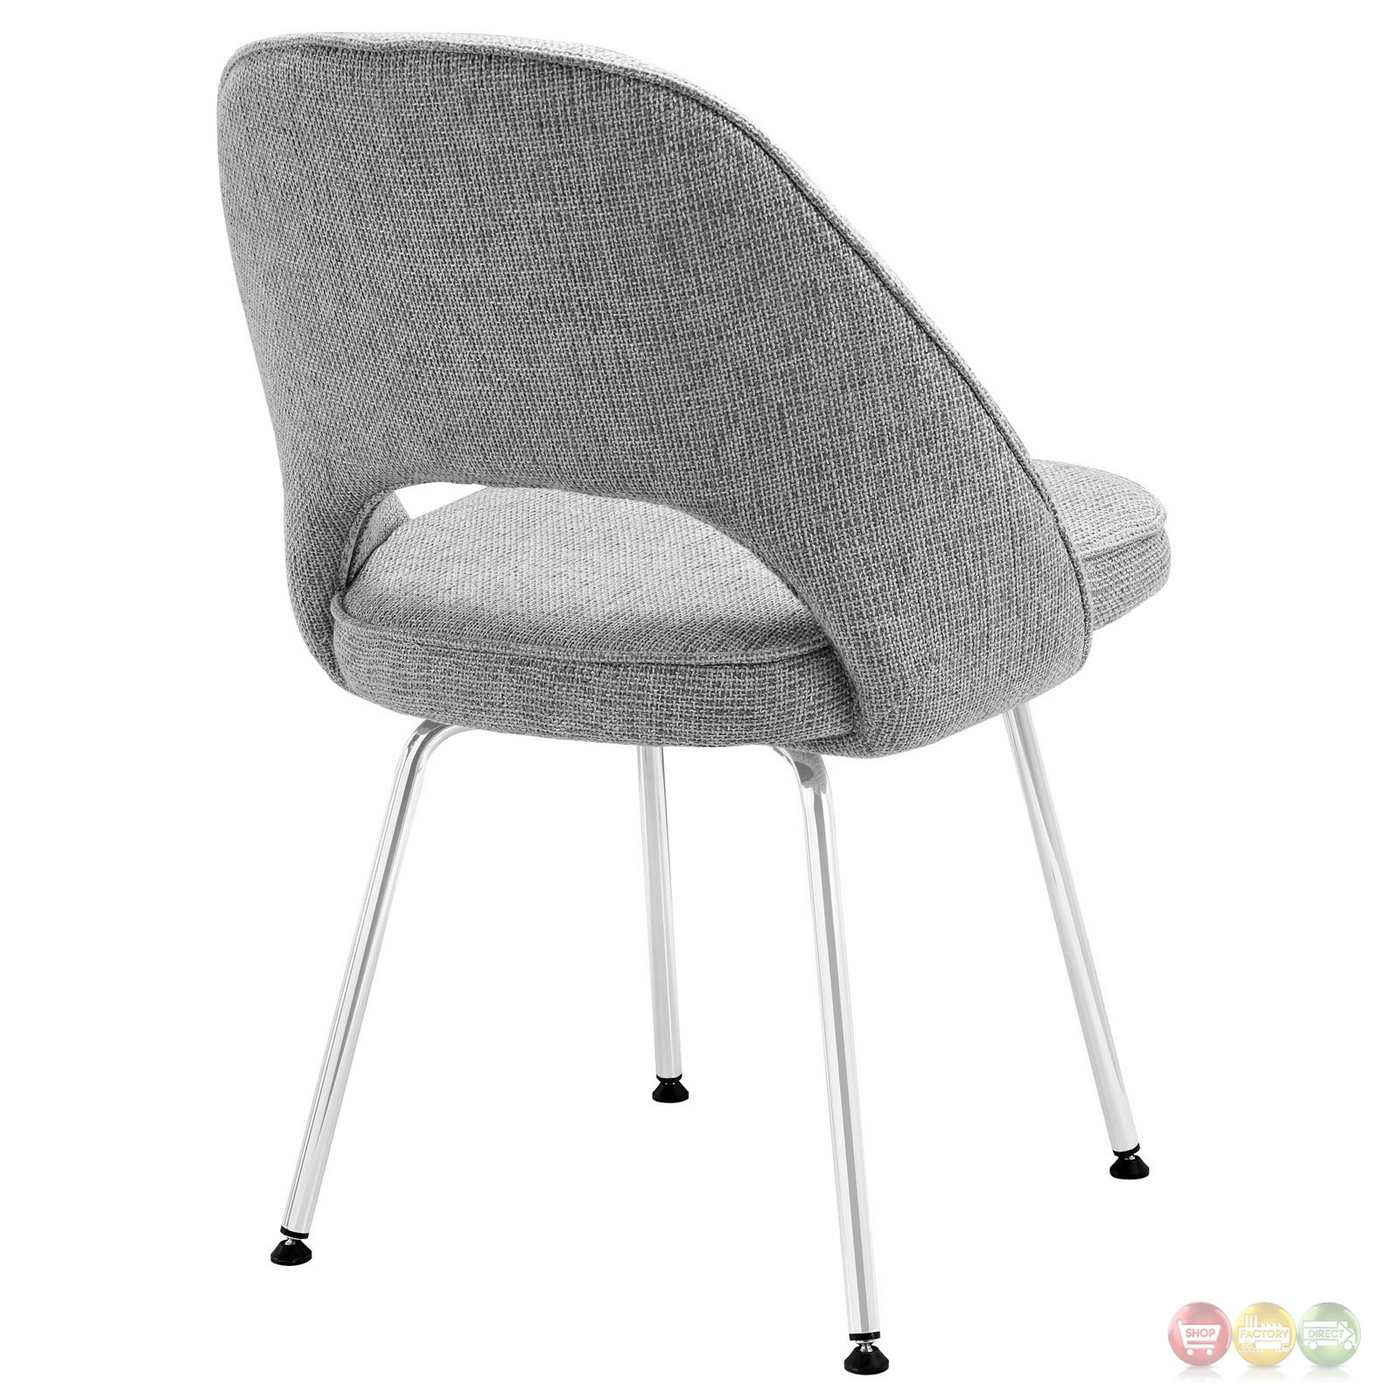 Set Of 4 Cordelia Tweed Upholstered Dining Chairs With  : set of 4 cordelia tweed upholstered dining chairs with chrome legs light gray 7 from shopfactorydirect.com size 1400 x 1400 jpeg 501kB